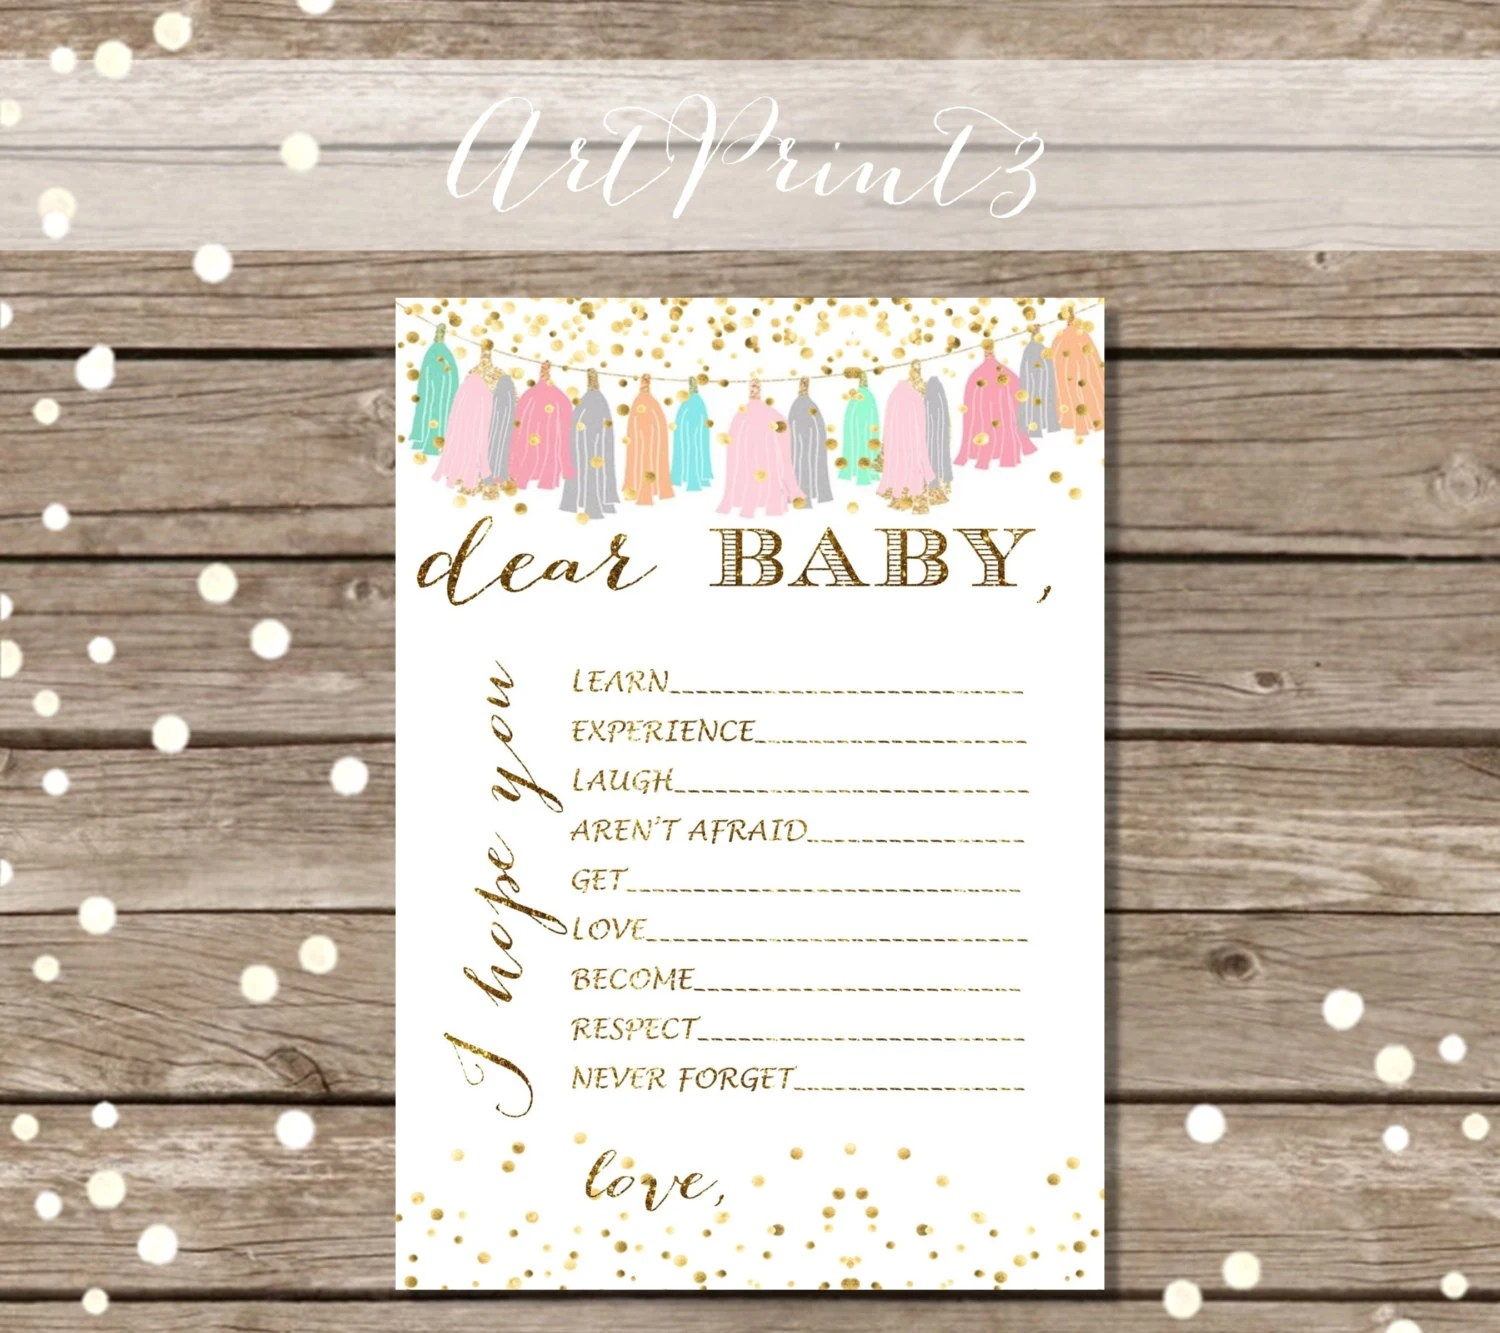 Dear Baby Printable Baby Shower Wishes Printable Baby Shower Etsy